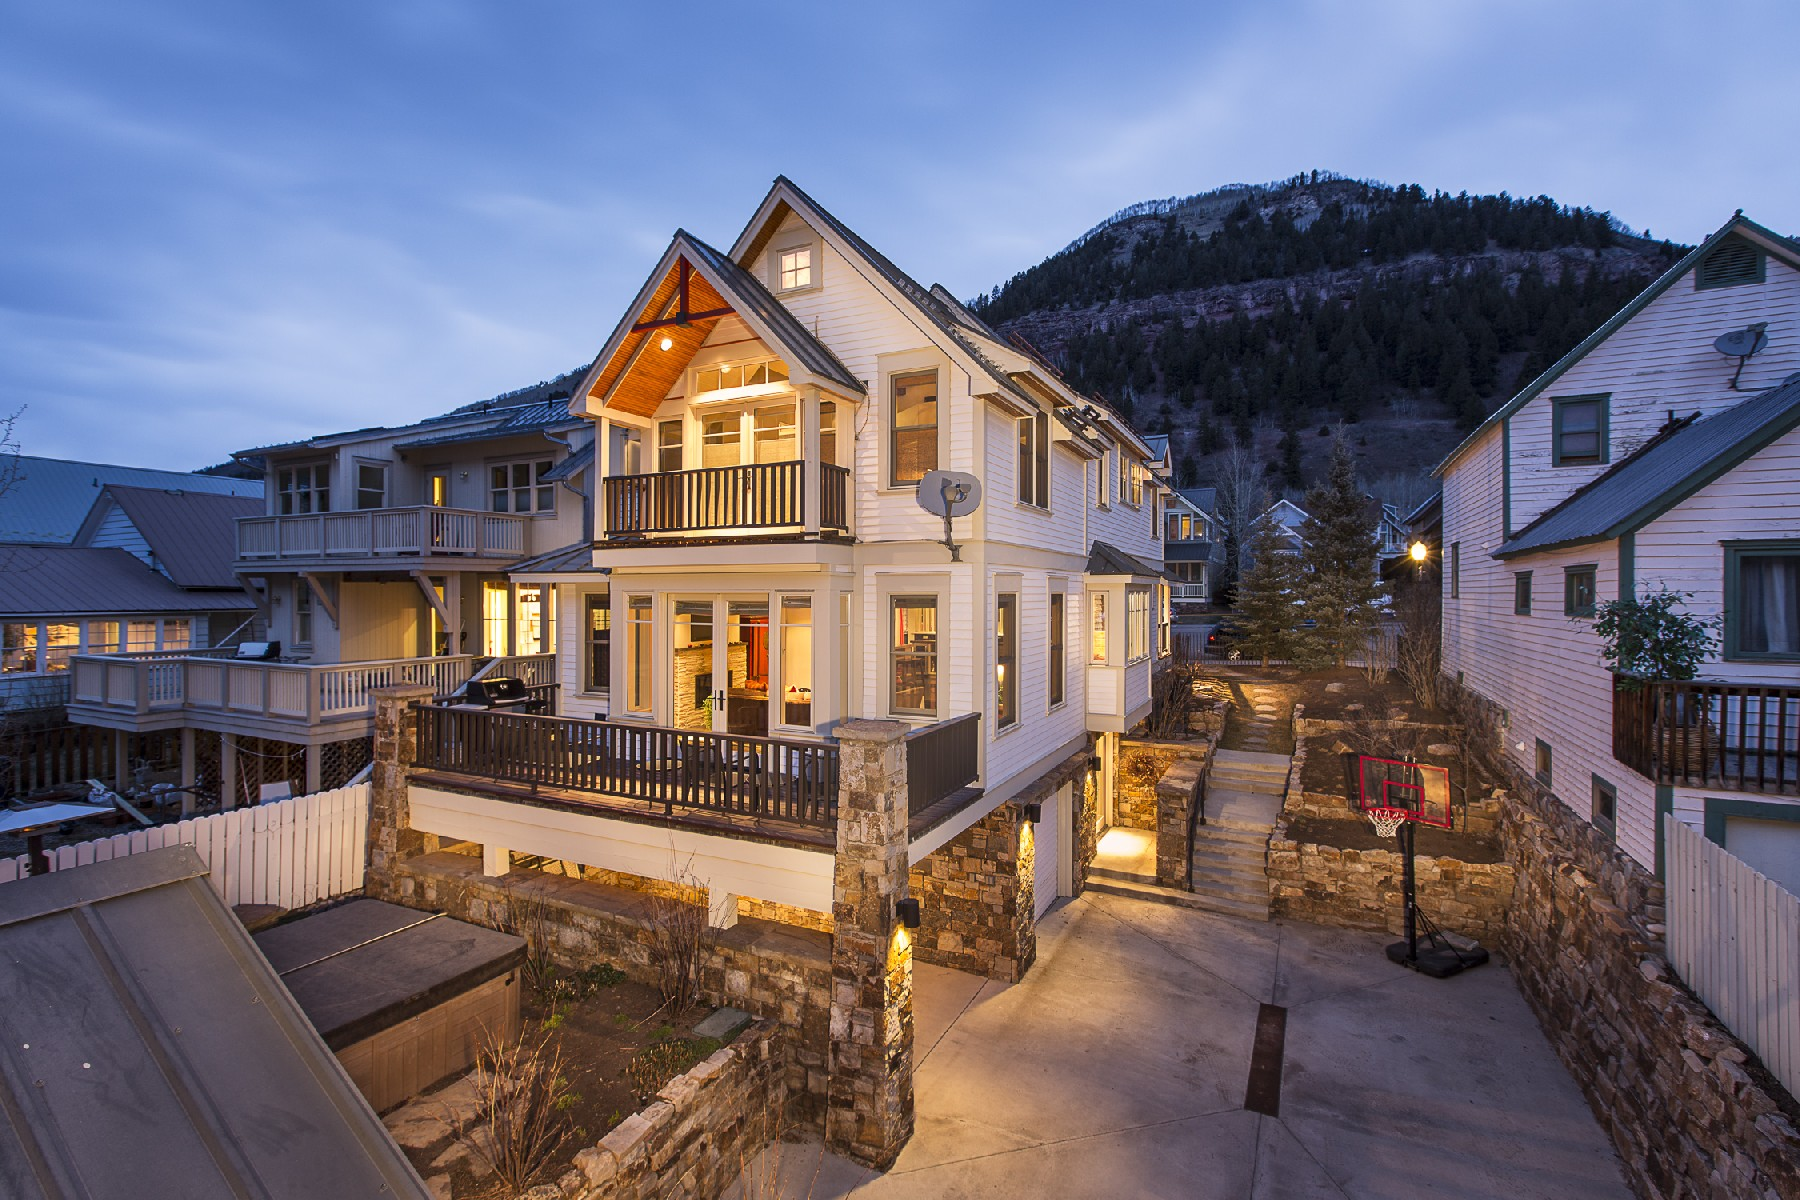 Single Family Home for Sale at 522 W Colorado Avenue Telluride, Colorado, 81435 United States